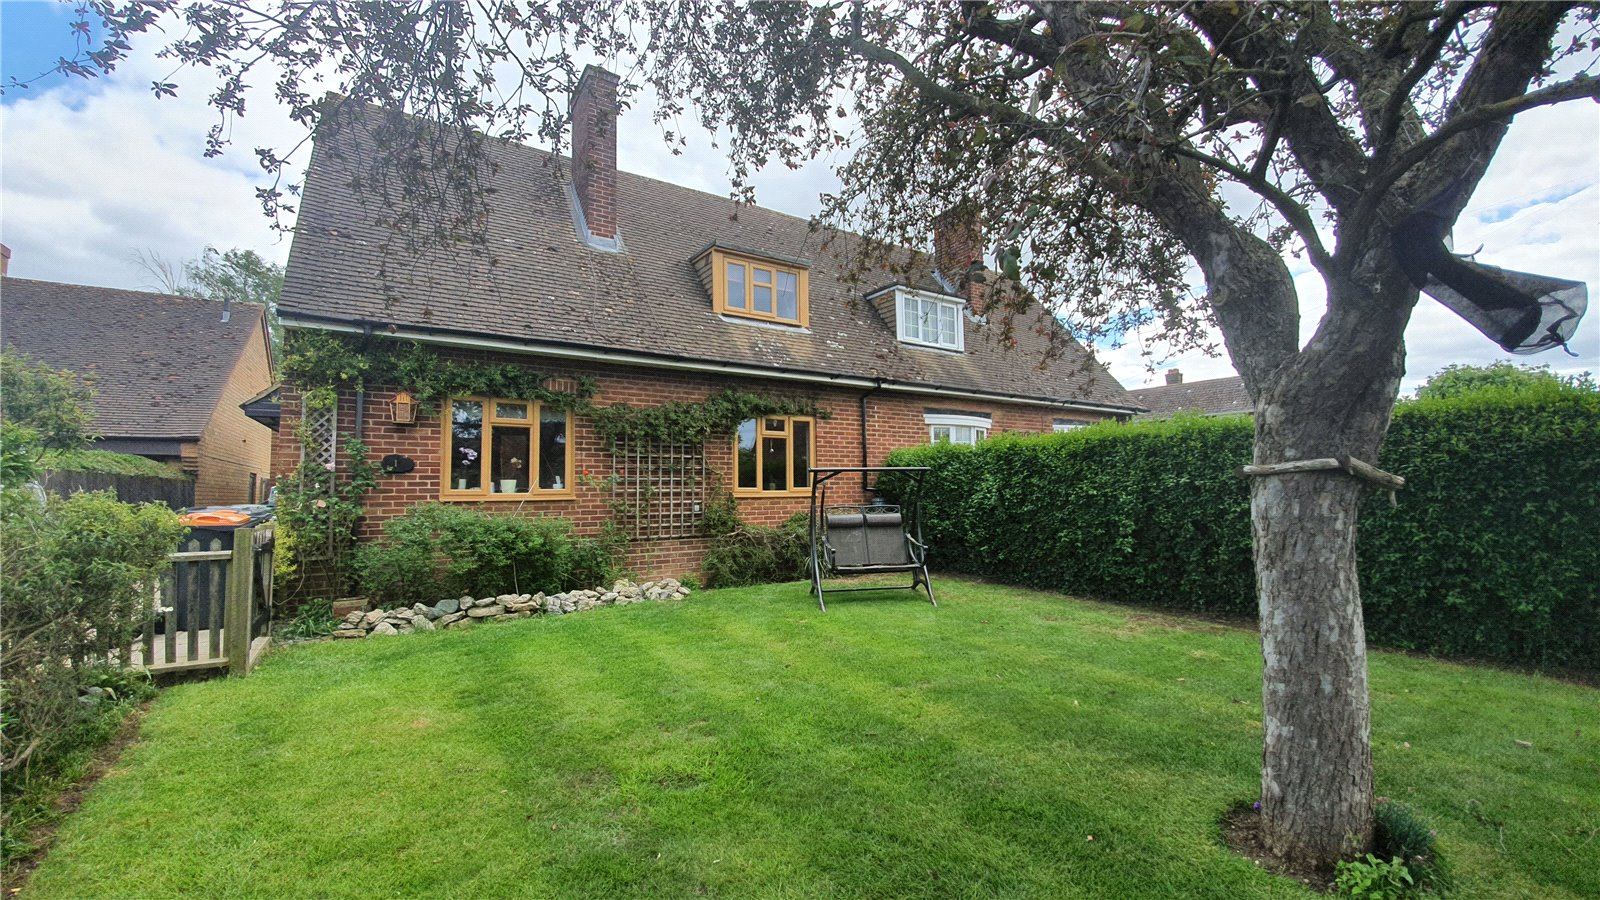 4 bed house for sale in Saxon Close, Roxton, MK44